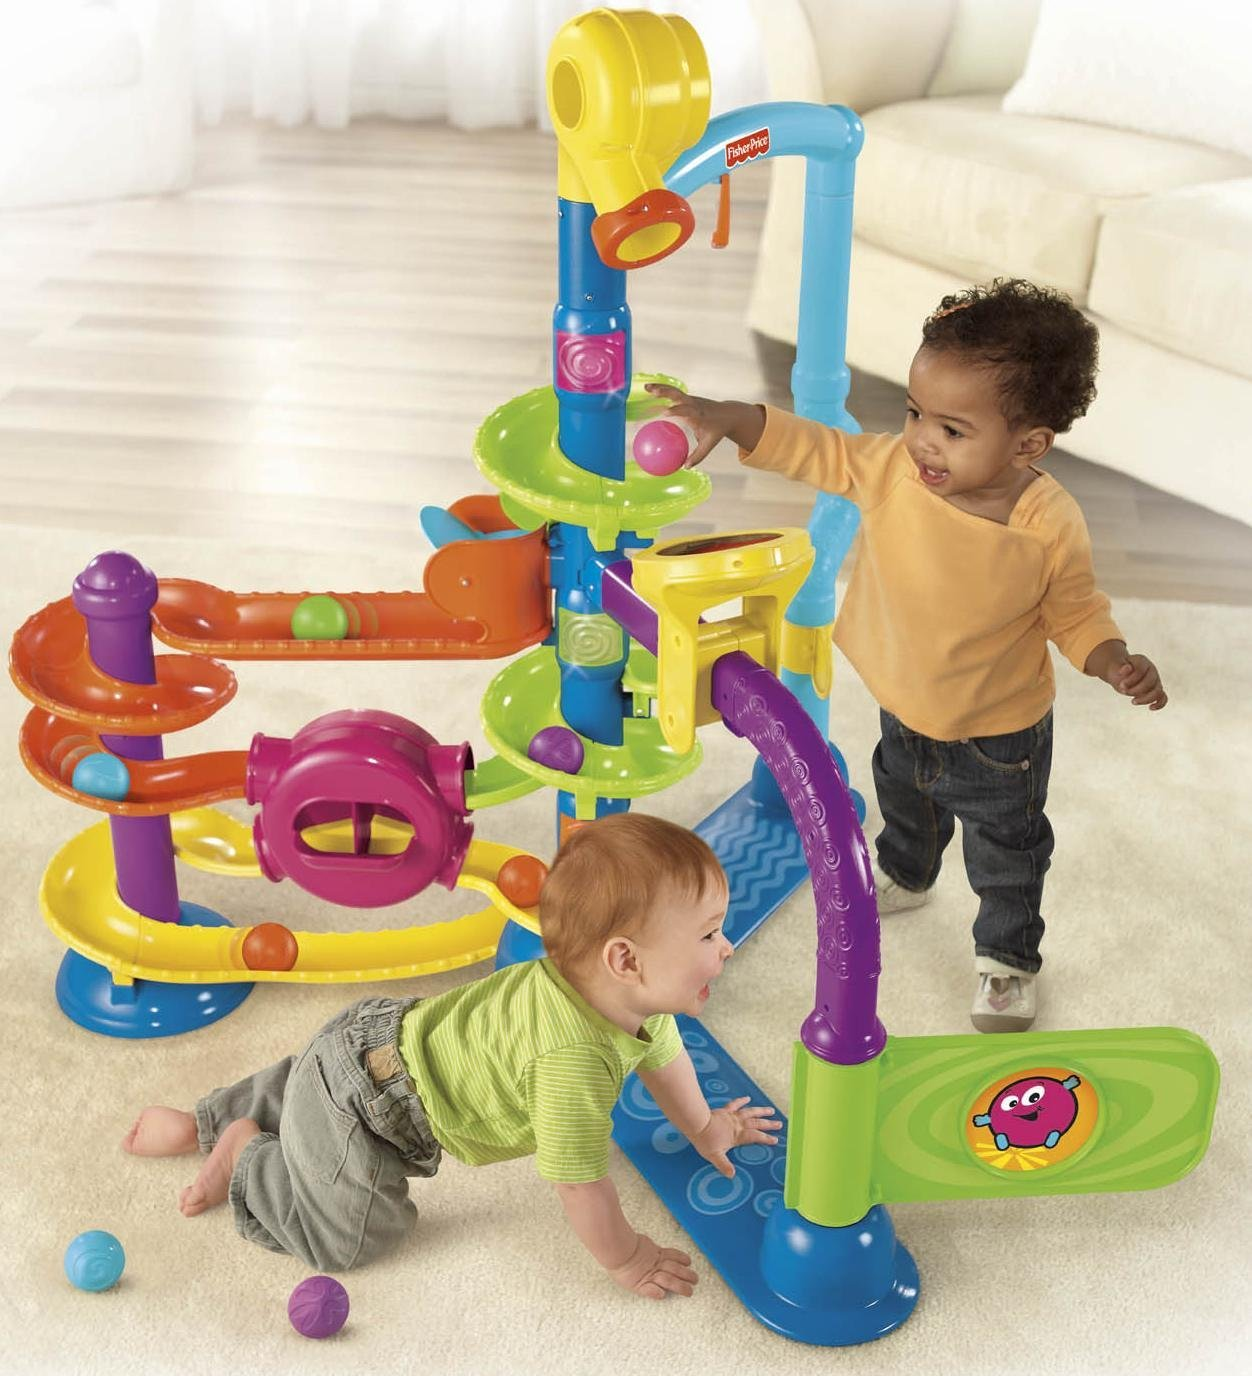 Toys For 2 Year Olds For Girls : Total fab best gifts for one year old boys first birthday